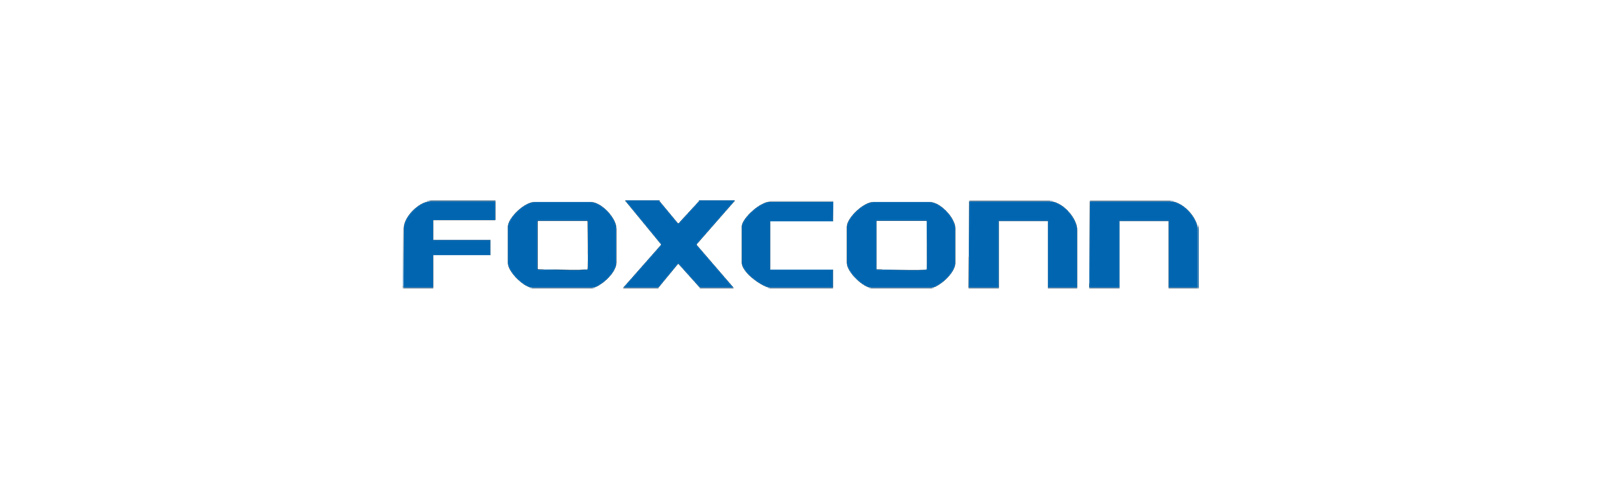 Foxconn won't build complete EVs, will focus on software-hardware integration instead